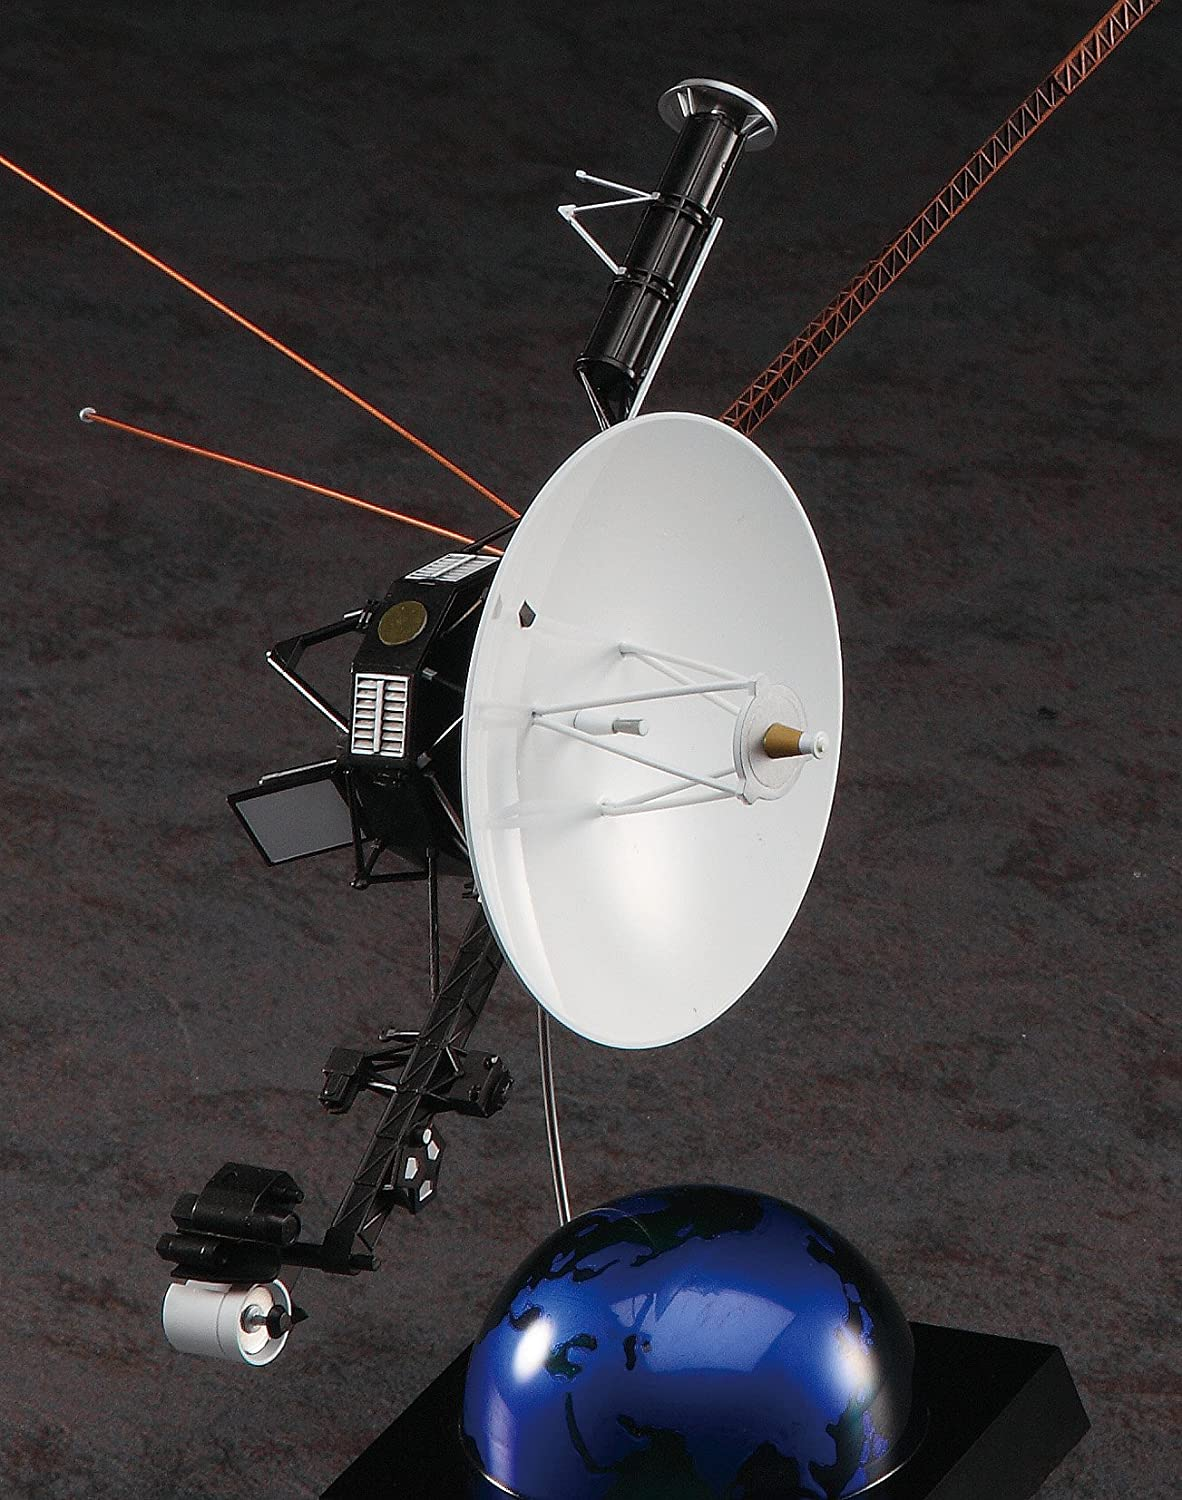 space probe voyager - 788×1000